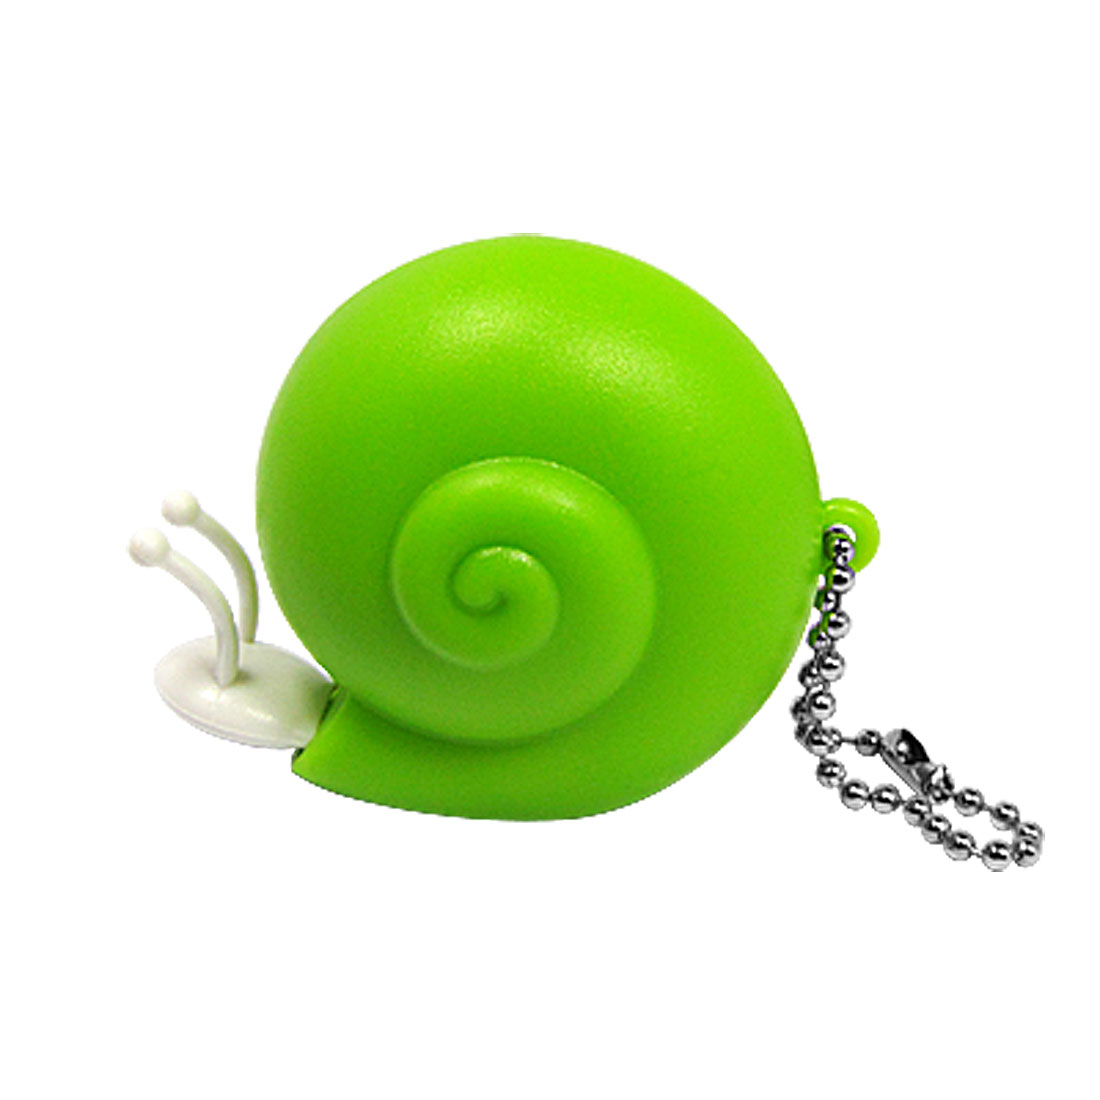 100cm 40 Inch Snail Retractable Ruler Measuring Tape Green